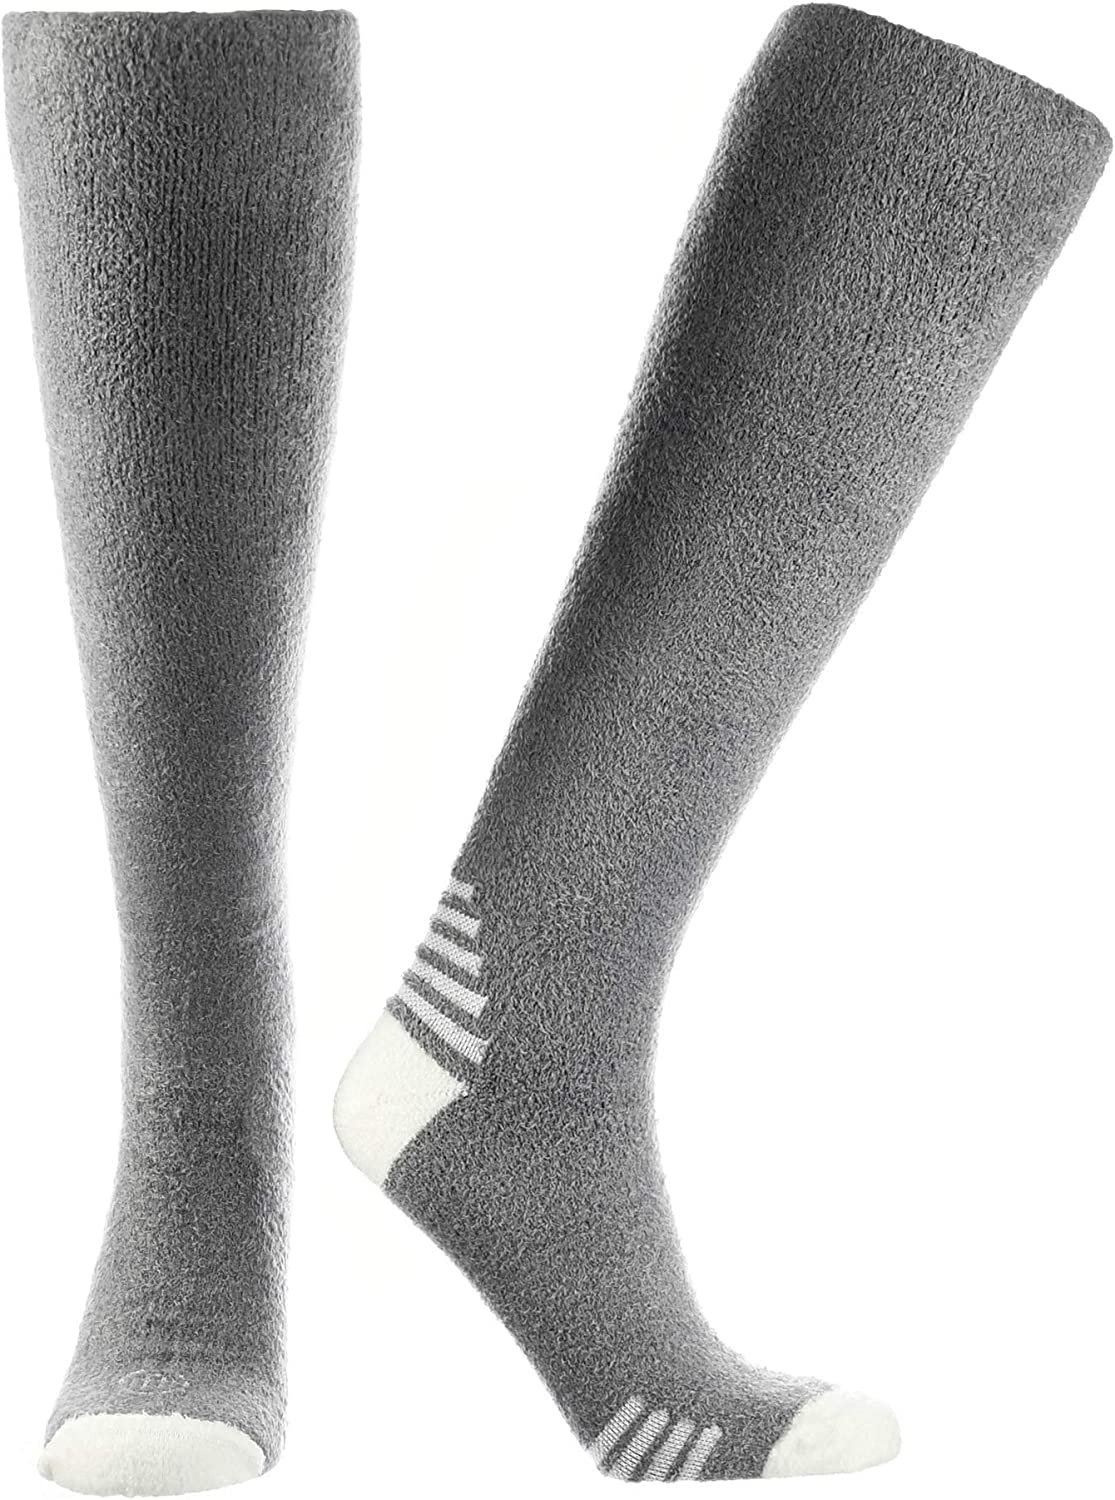 Doctor's Choice Men's Sleeping Socks, Light Cozy Compression Sock, 8-15 mmHg, with Soft, Warm, Fuzzy Features at  Men's Clothing store